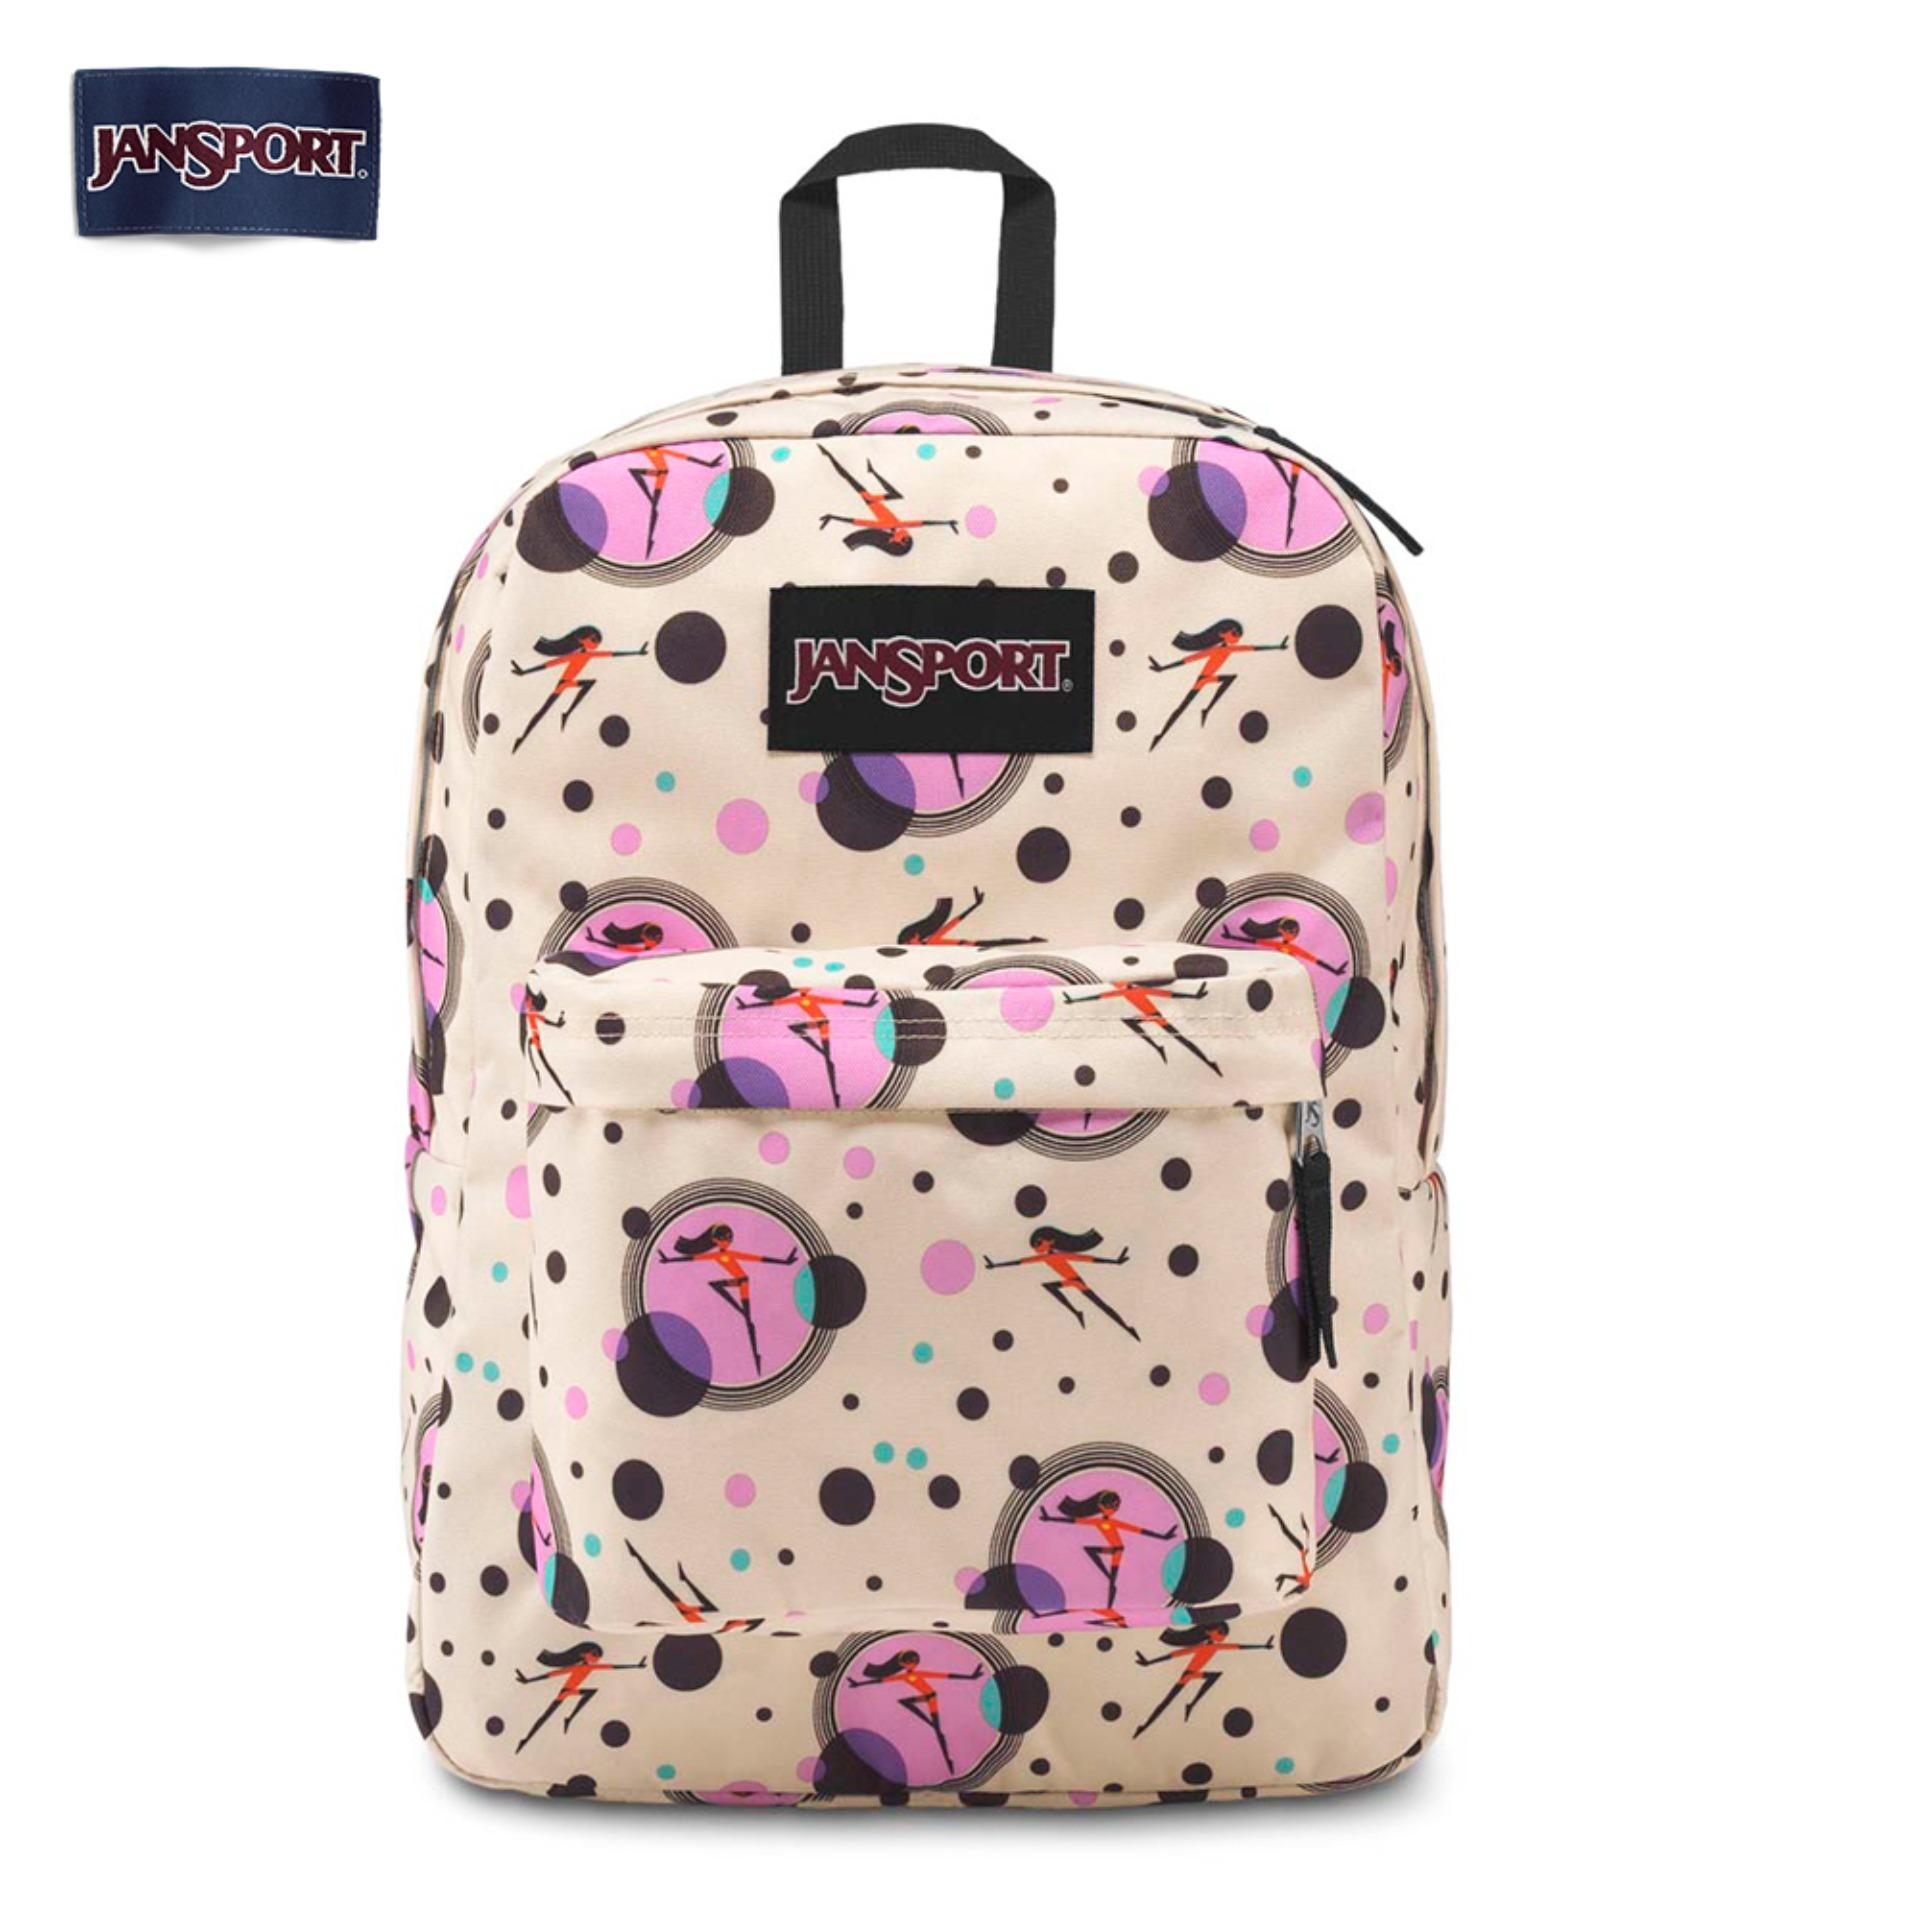 Jansport Big Student Backpack Warranty- Fenix Toulouse Handball 9addf71be5b29